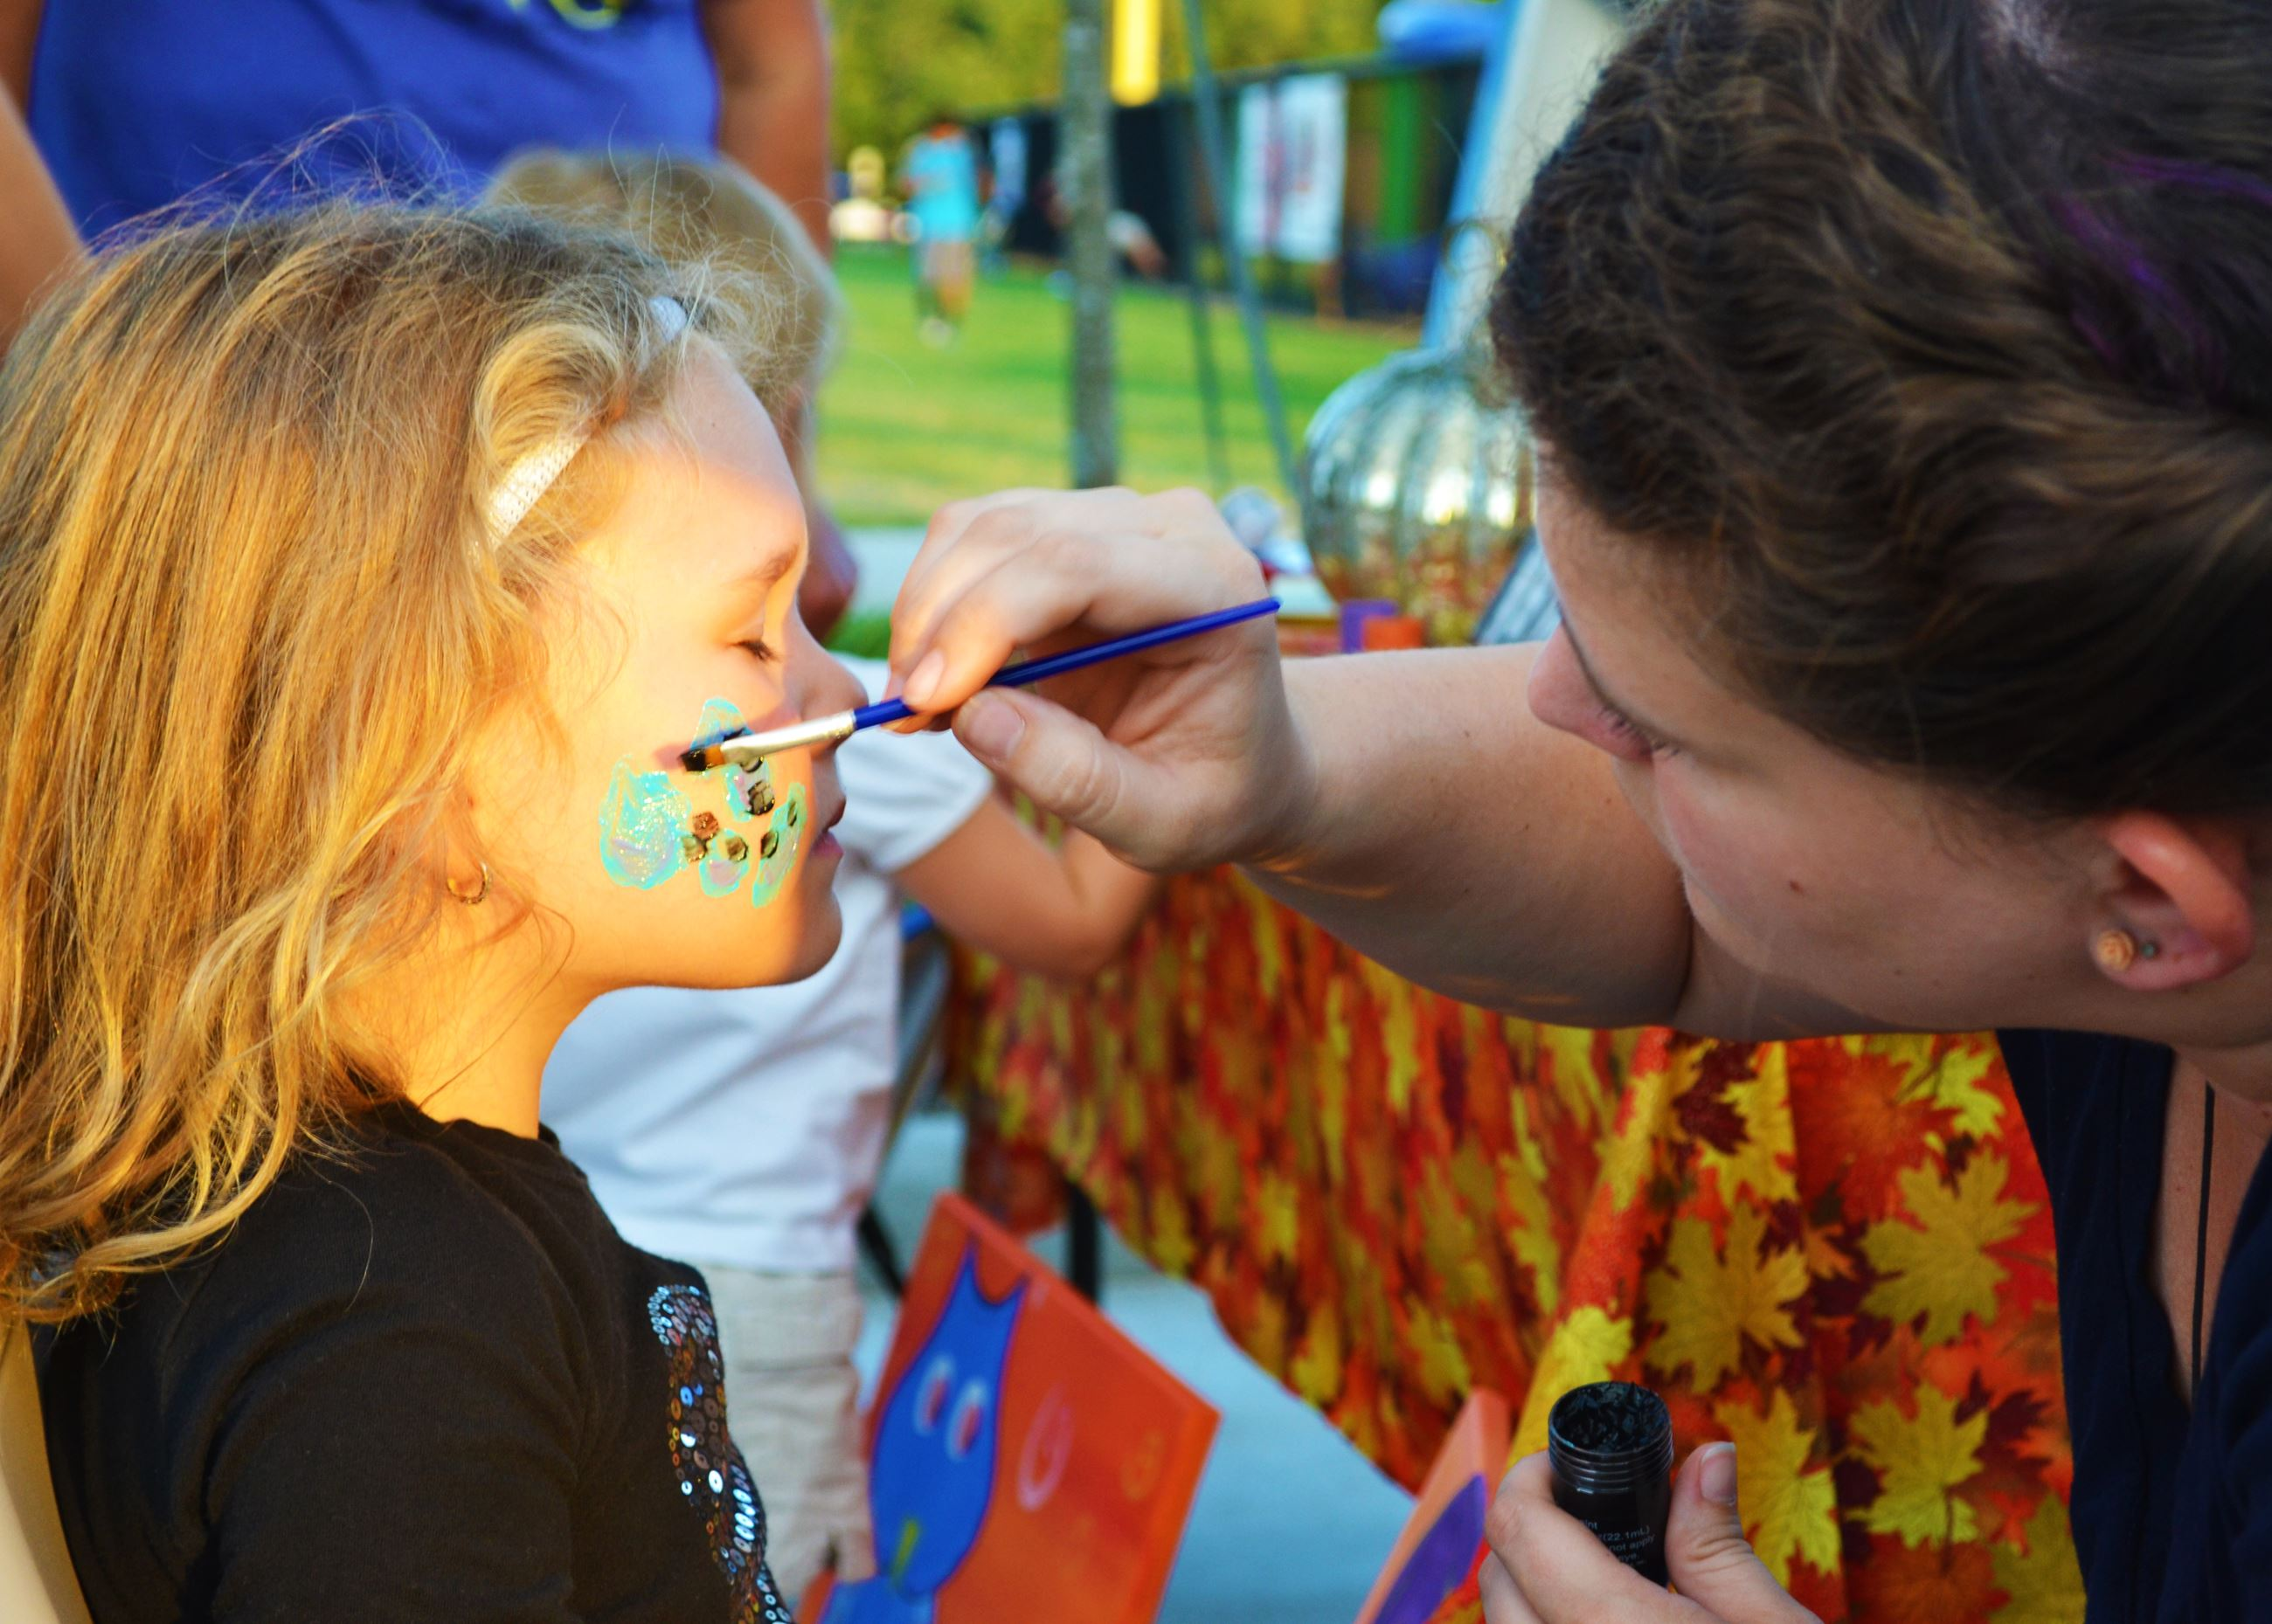 A girl gets her face painted before the movie